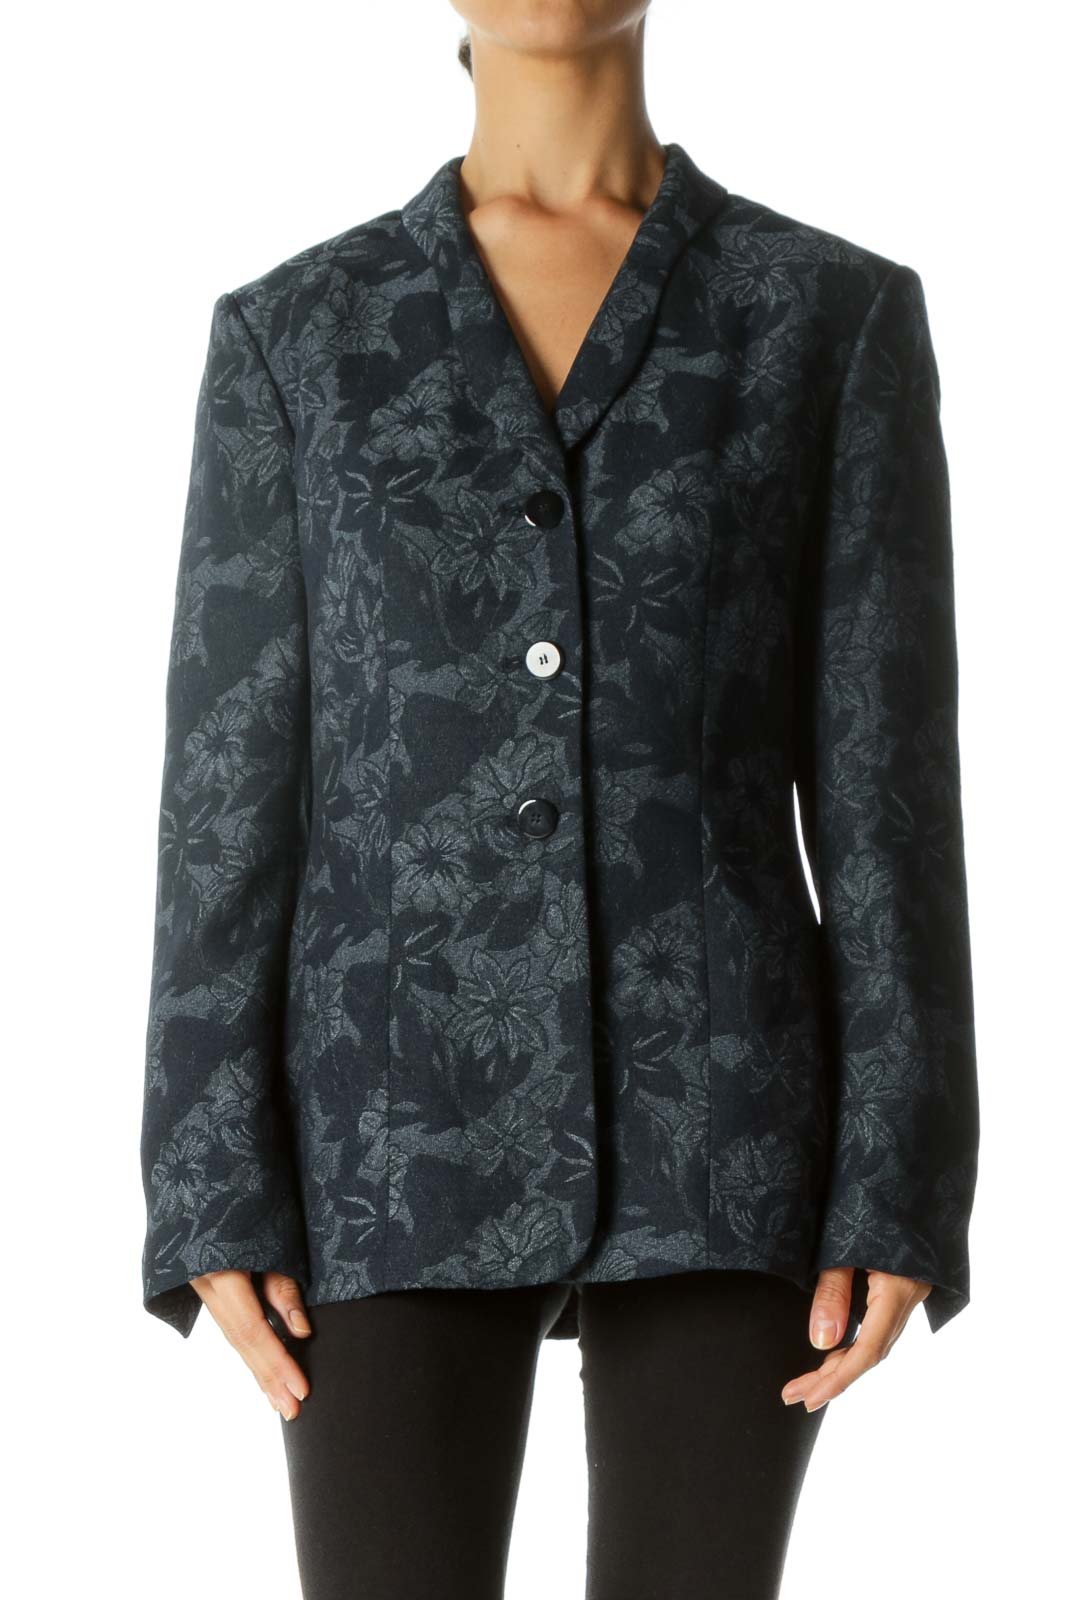 Blue White Floral Jacquard Padded Shoulders Blazer